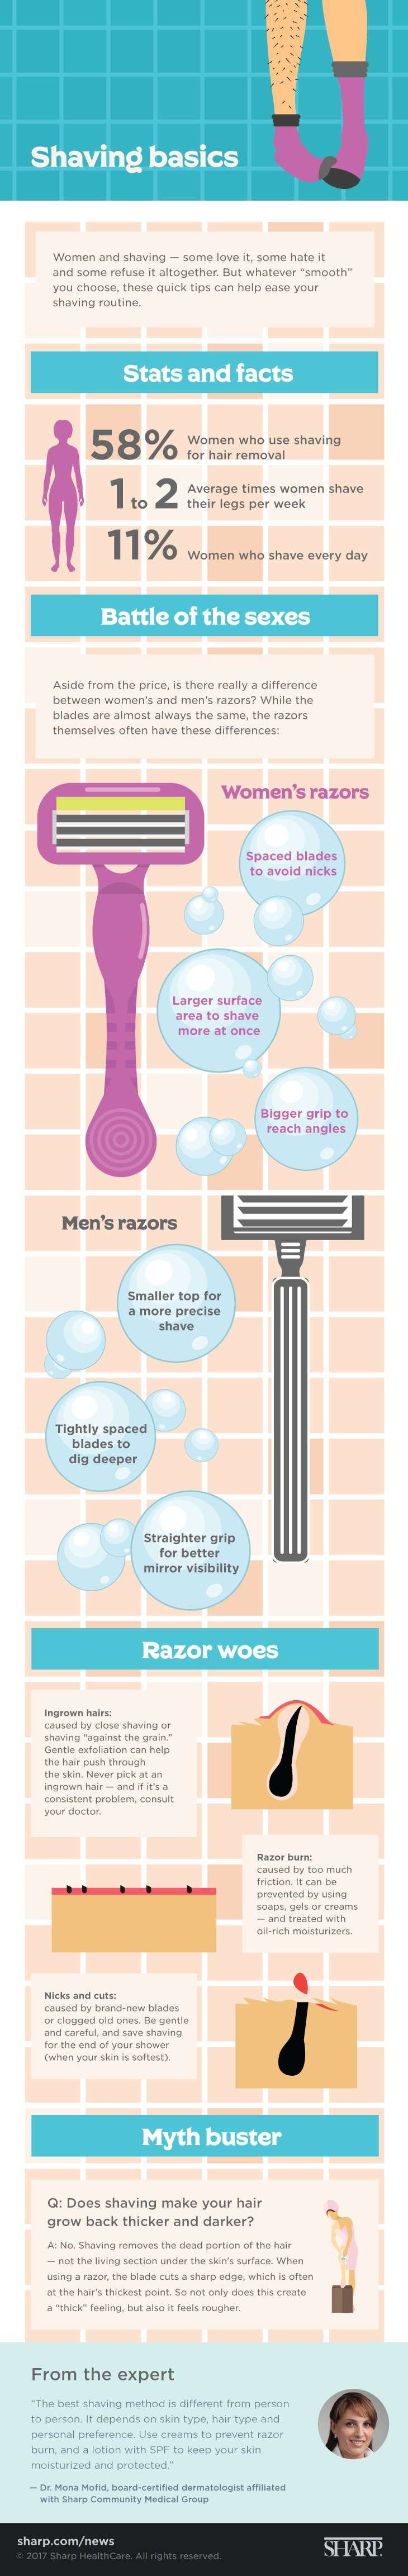 Shaving basics. Women and shaving - some love it, some hate it and some refuse it altogether. But whatever